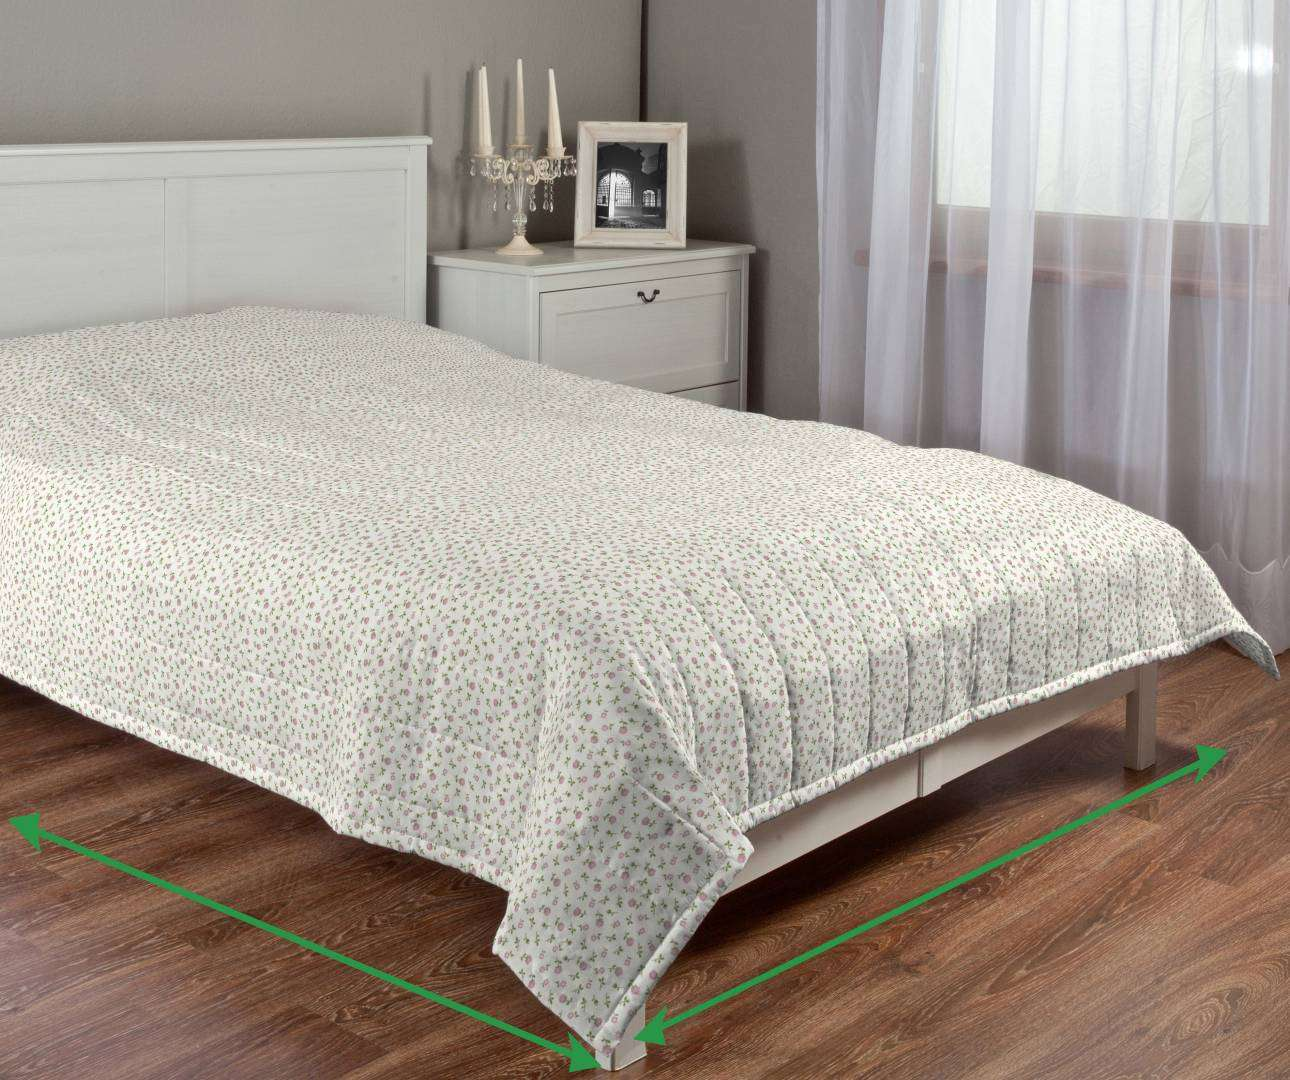 Quilted throw (vertical quilt pattern) in collection SALE, fabric: 136-25